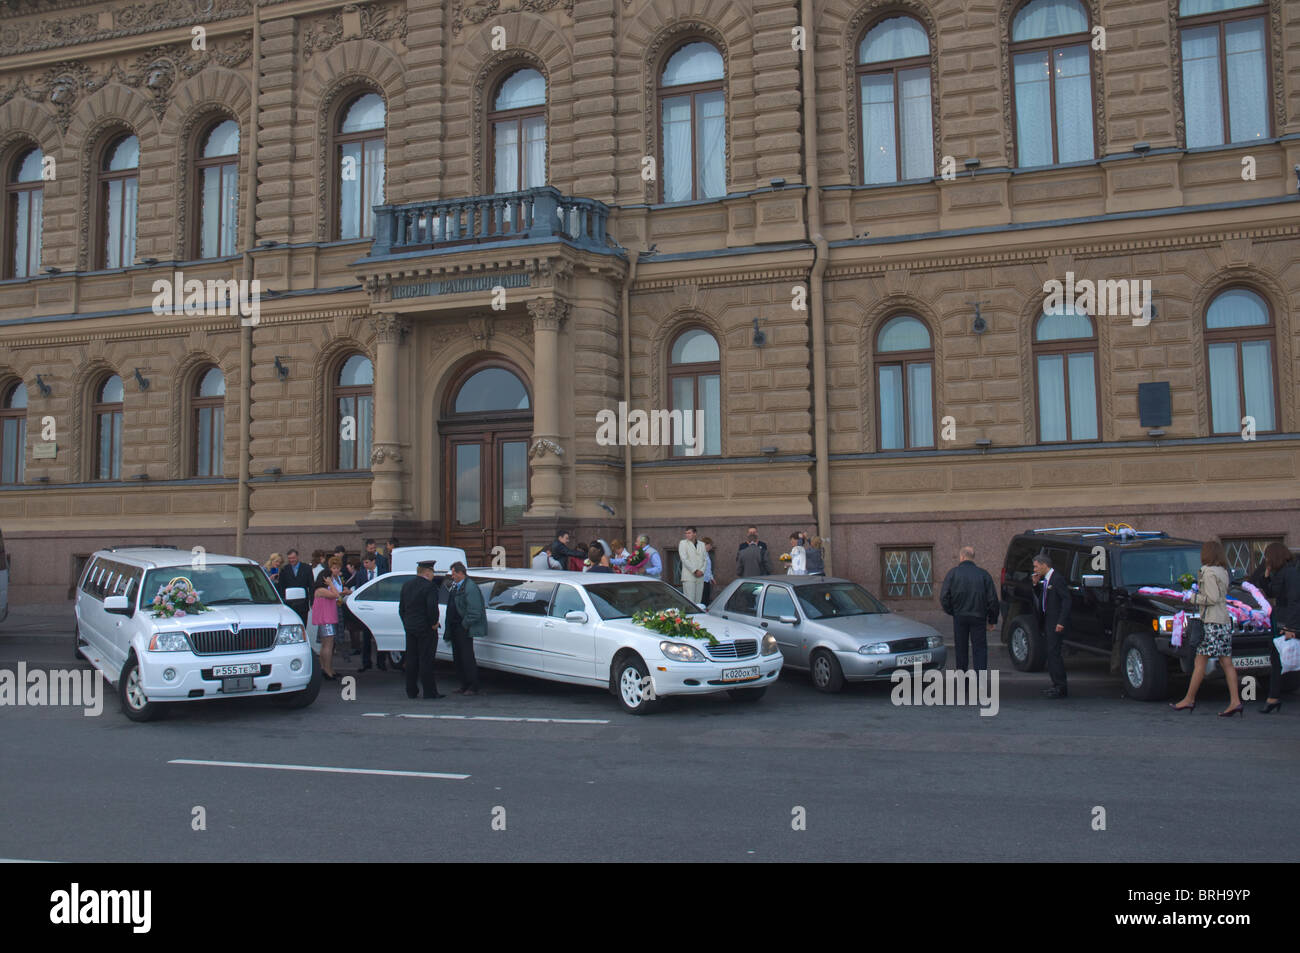 Wedding parties central St Petersburg Russia Europe - Stock Image